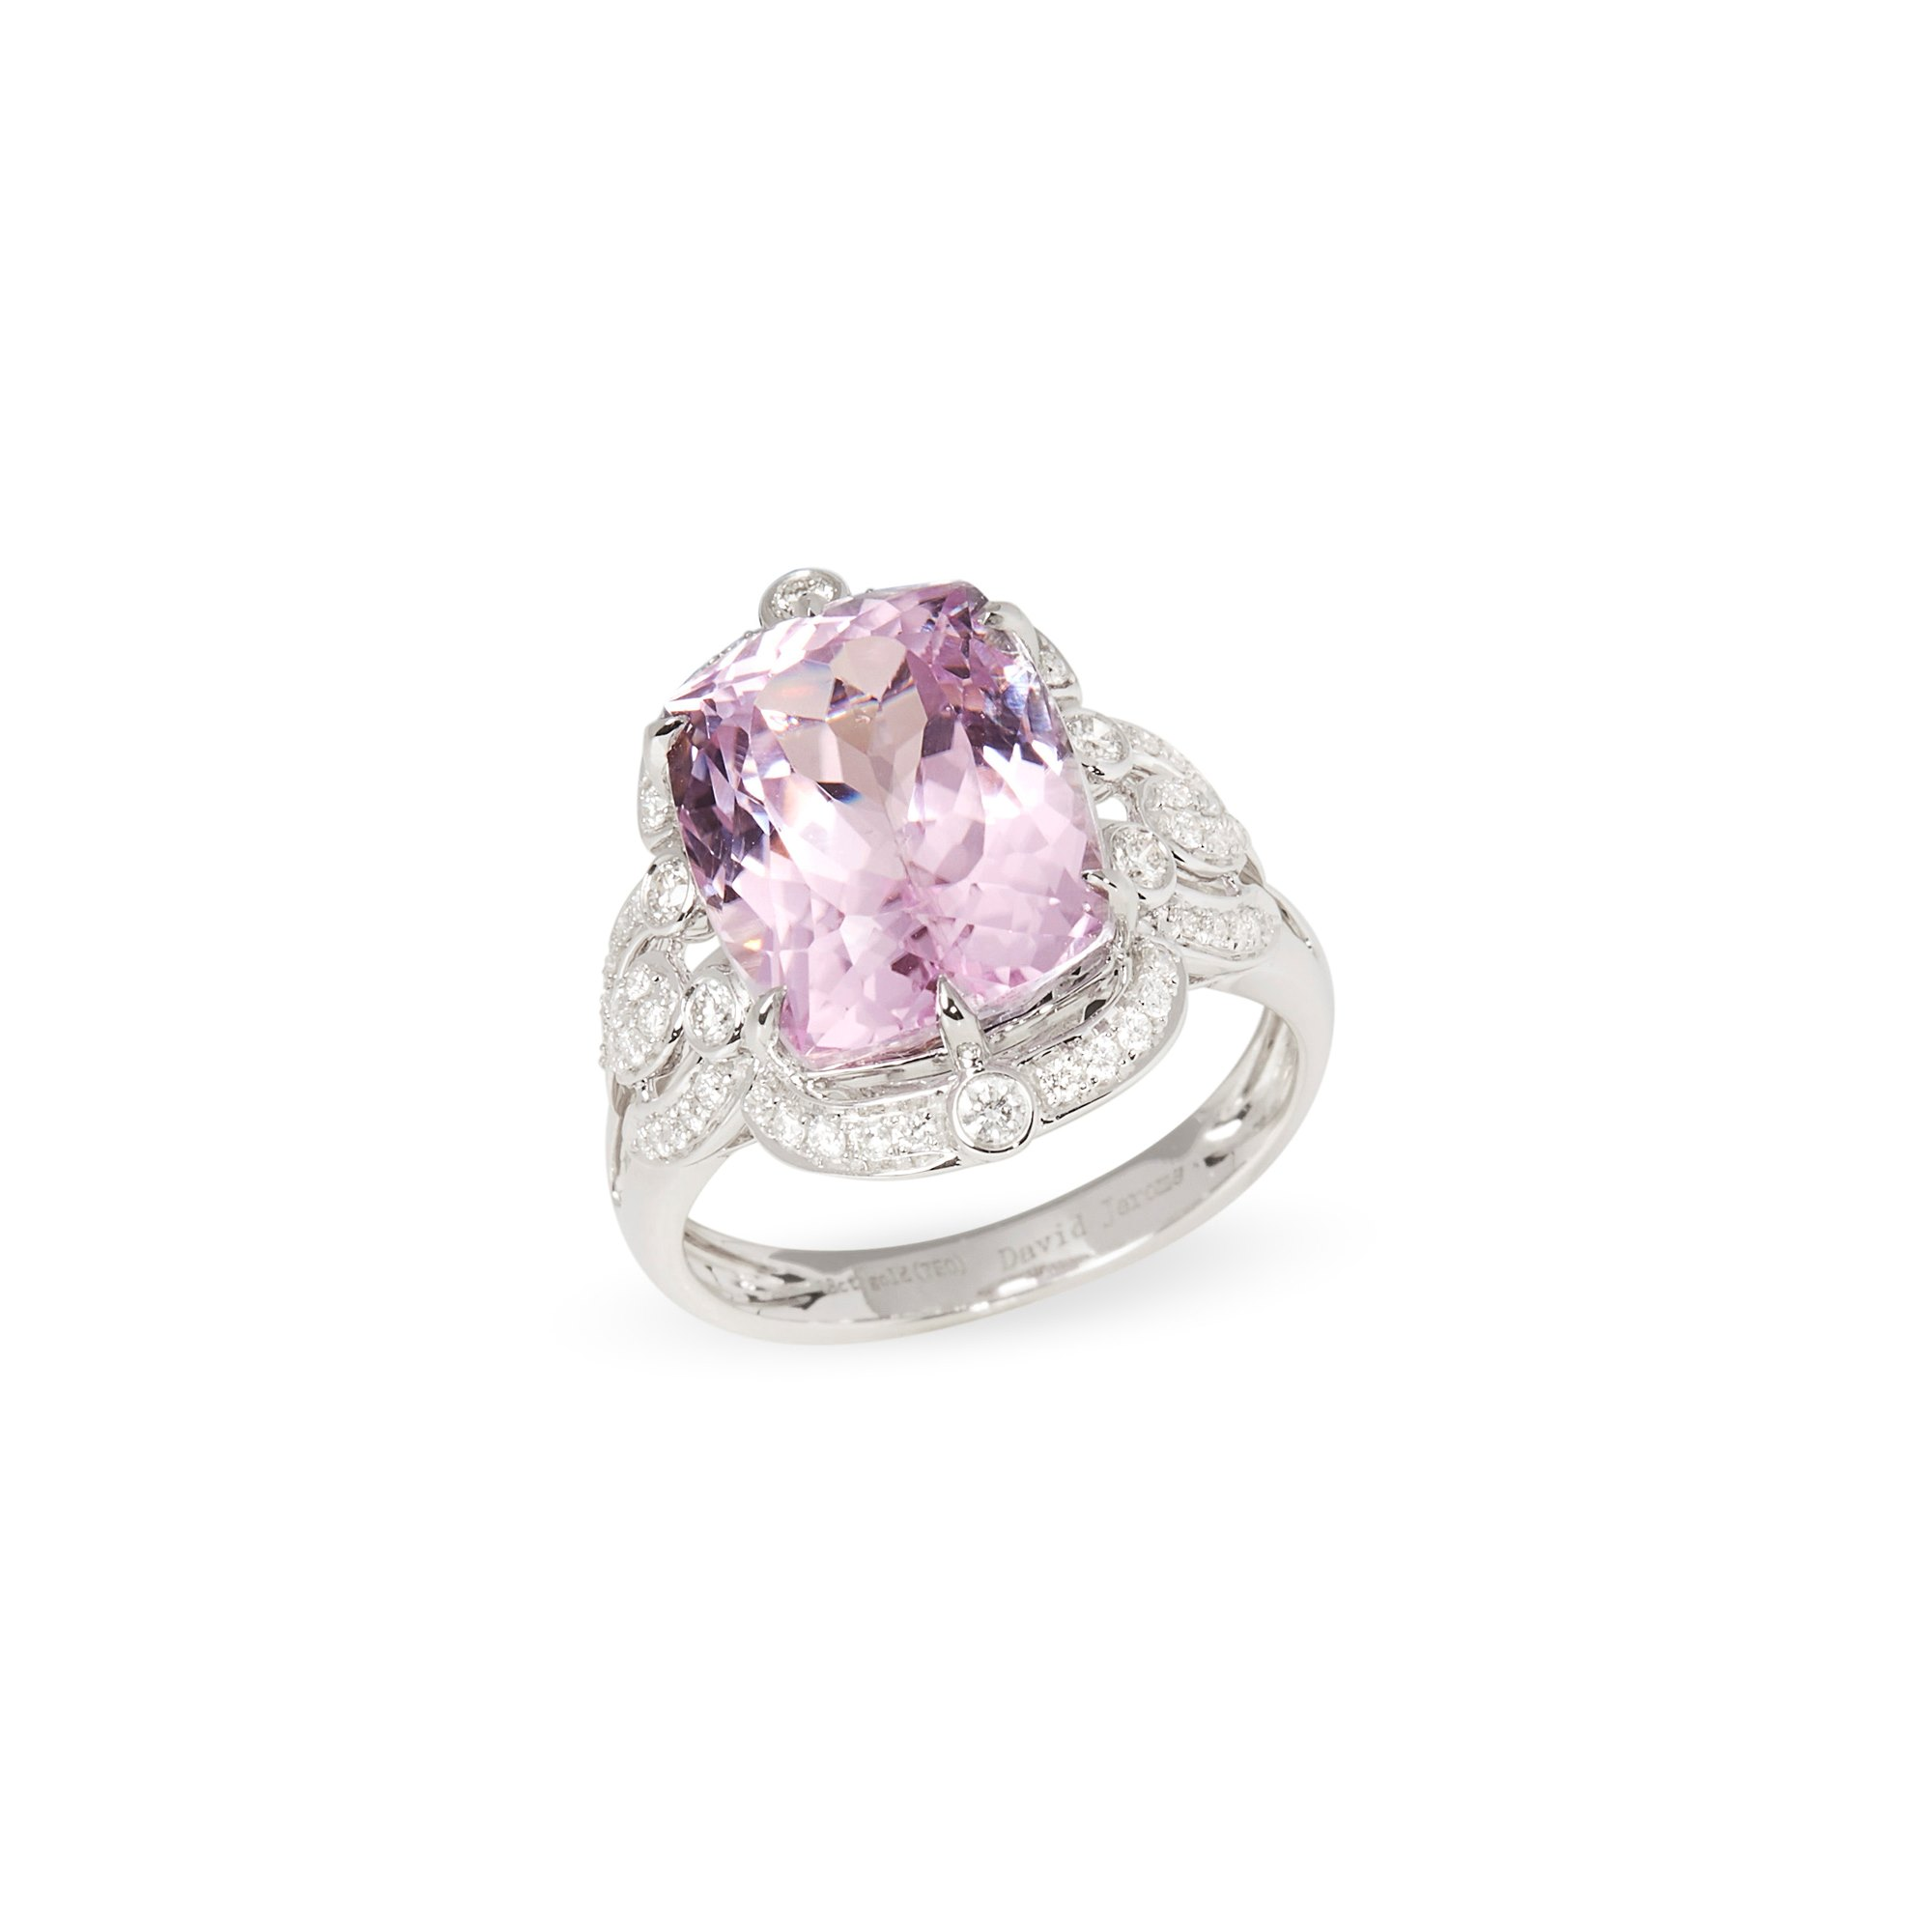 David Jerome Certified 9.94ct Cushion Cut Kunzite and Diamond 18ct gold Ring